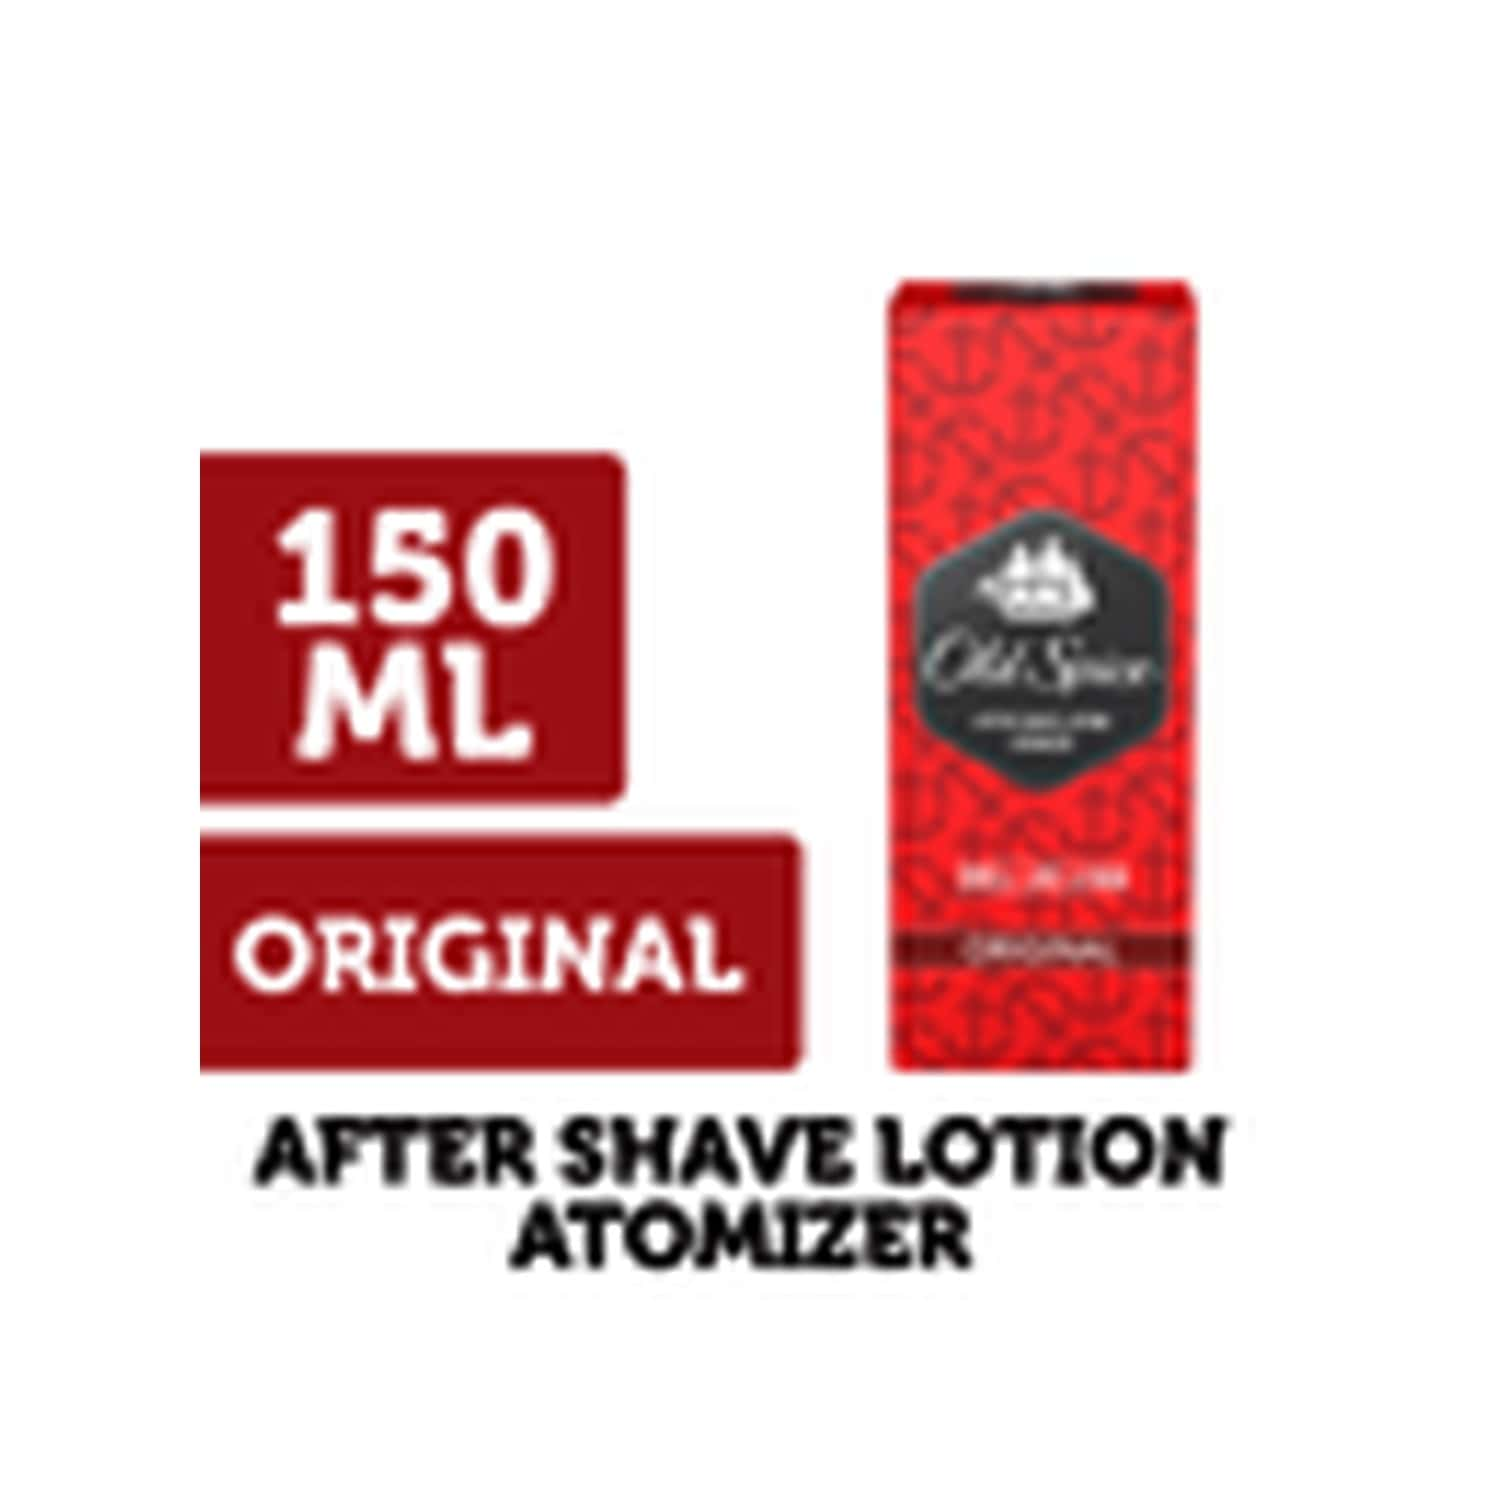 Old Spice After Shave Lotion ( Atomizer Original ) -150ml